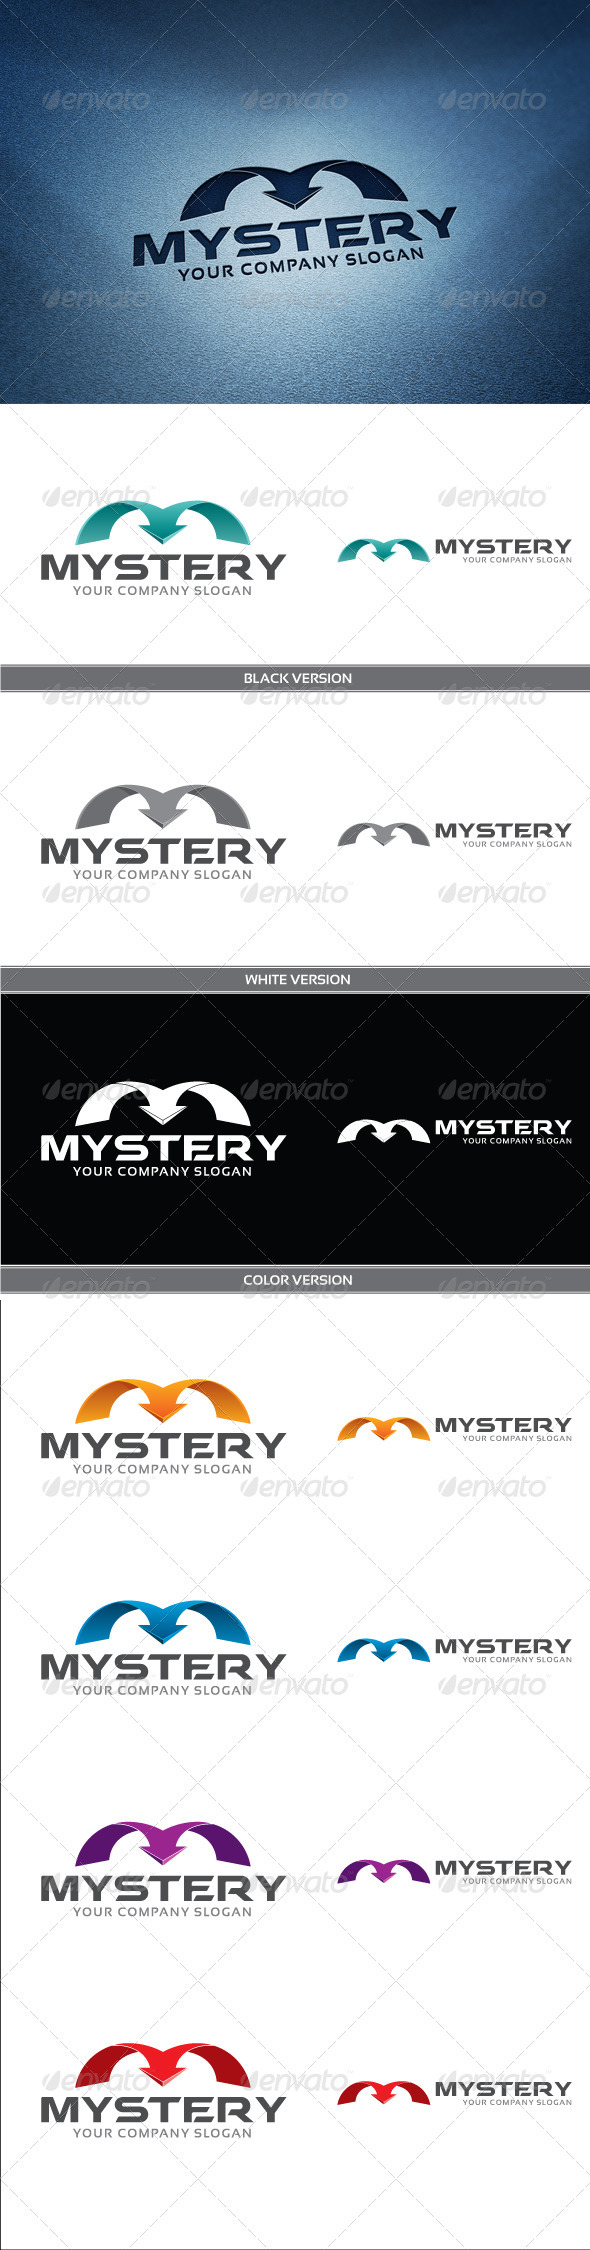 GraphicRiver Mystery 3969409